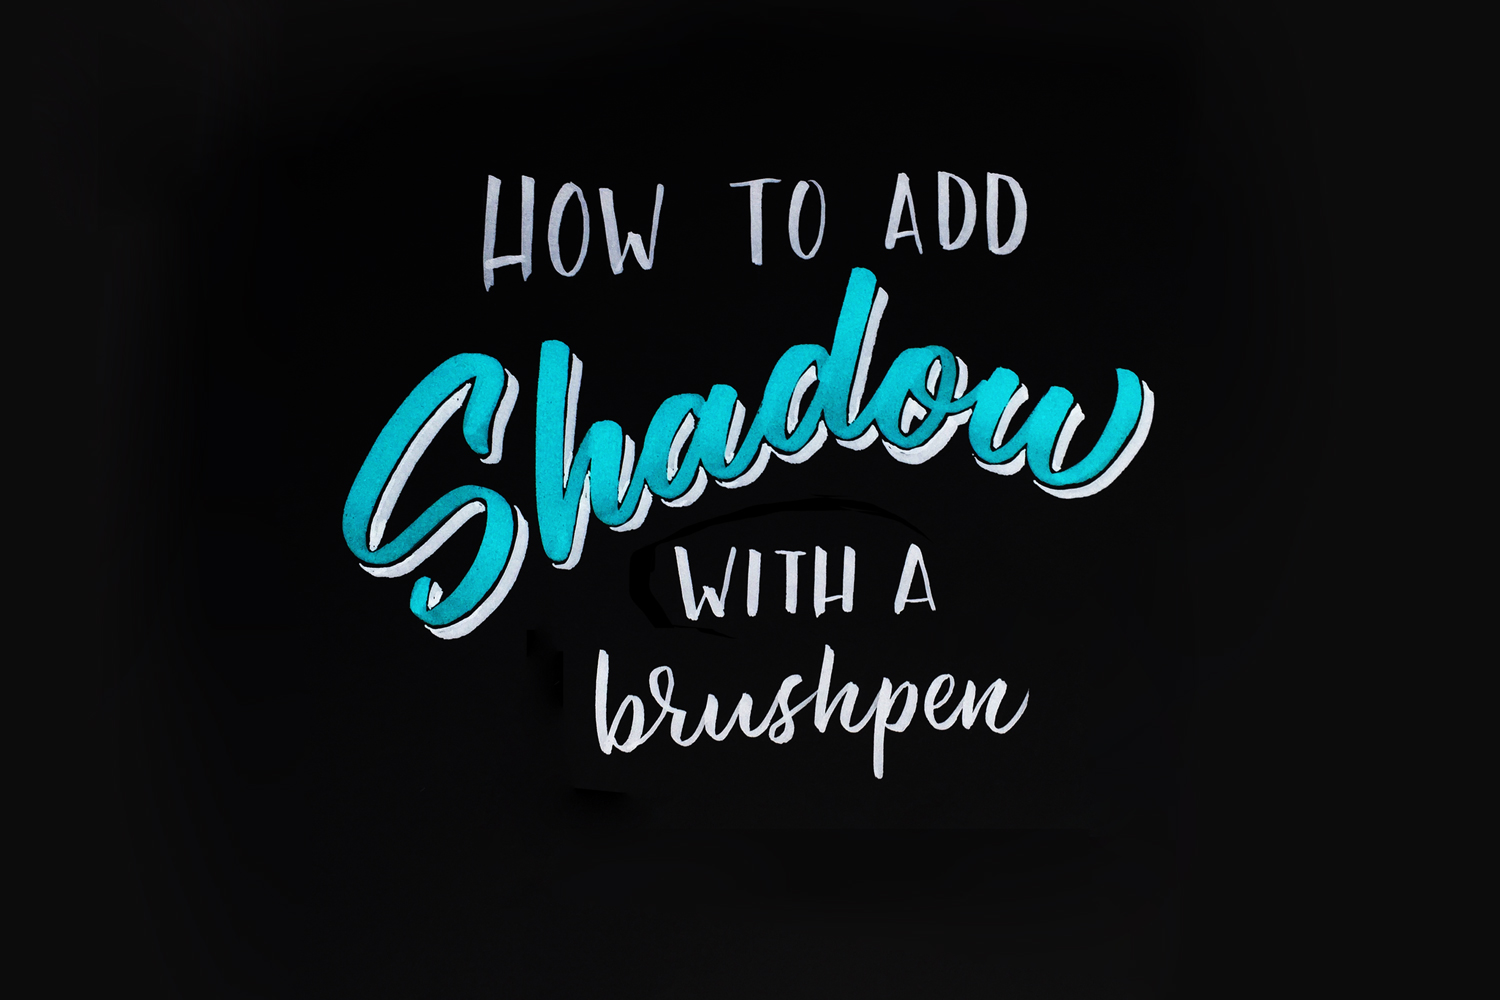 How To Add Shadow With A Brush Pen Noah Camp 3d Typography Hand